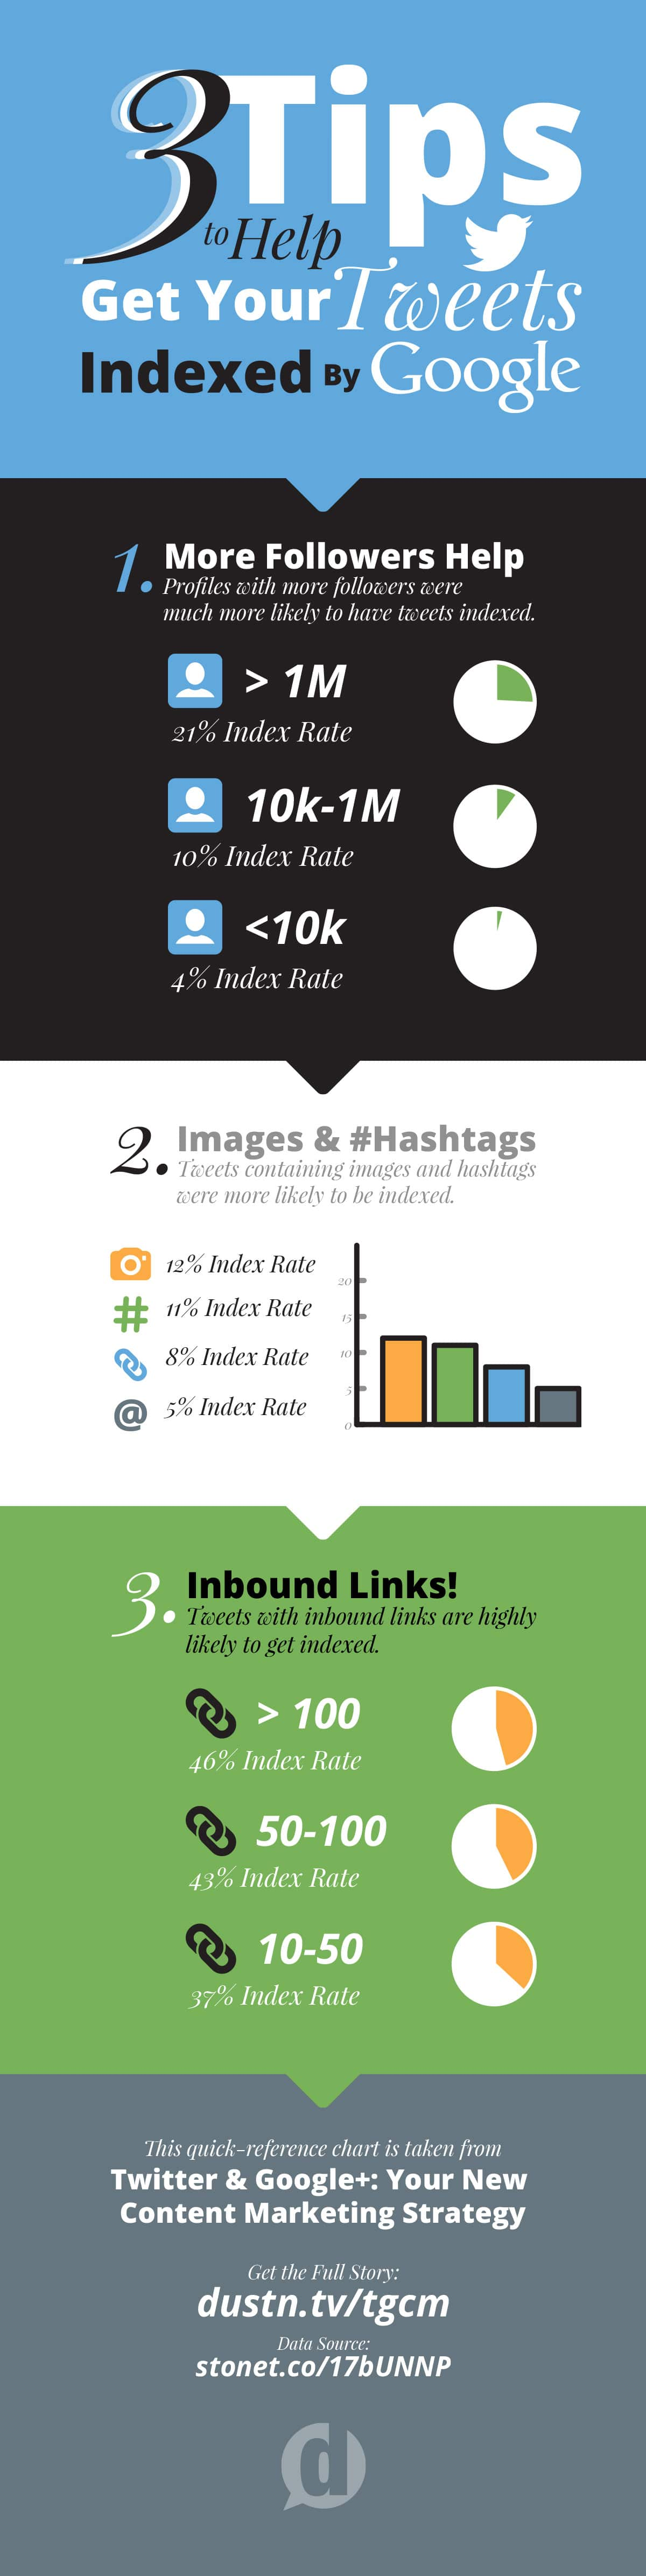 twitter tips for getting indexed by google infographic